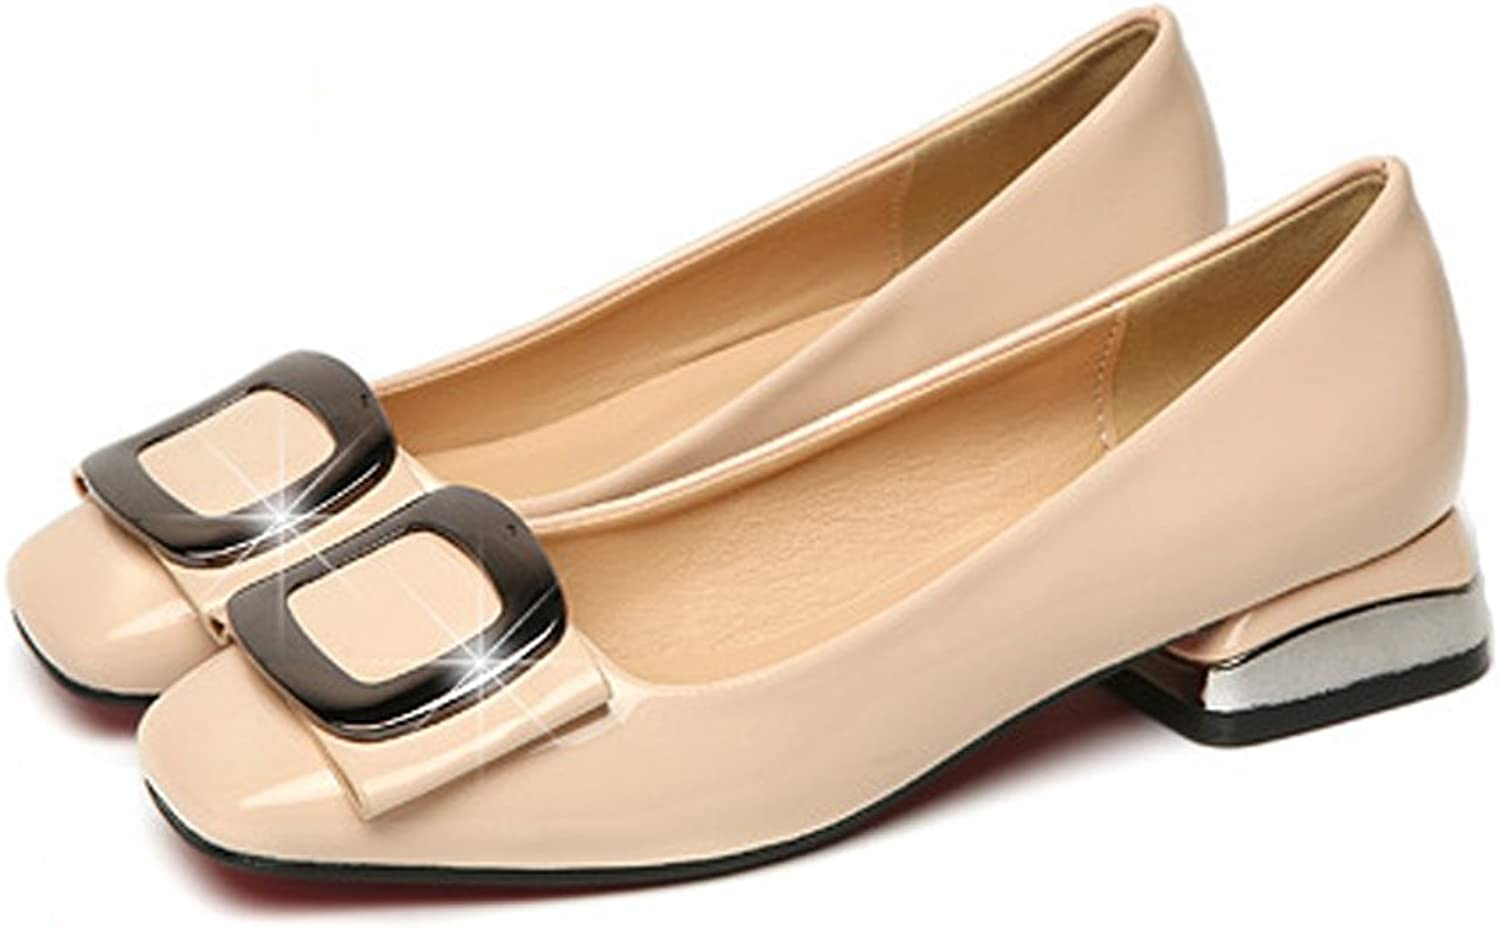 SXHDMY Single shoes Female Spring Thick Heels Korean Version of The Wild Buckle Women's shoes Women's Wild Work shoes Tide 34-40 Yards high Heels (color   Apricot, Size   6 US)